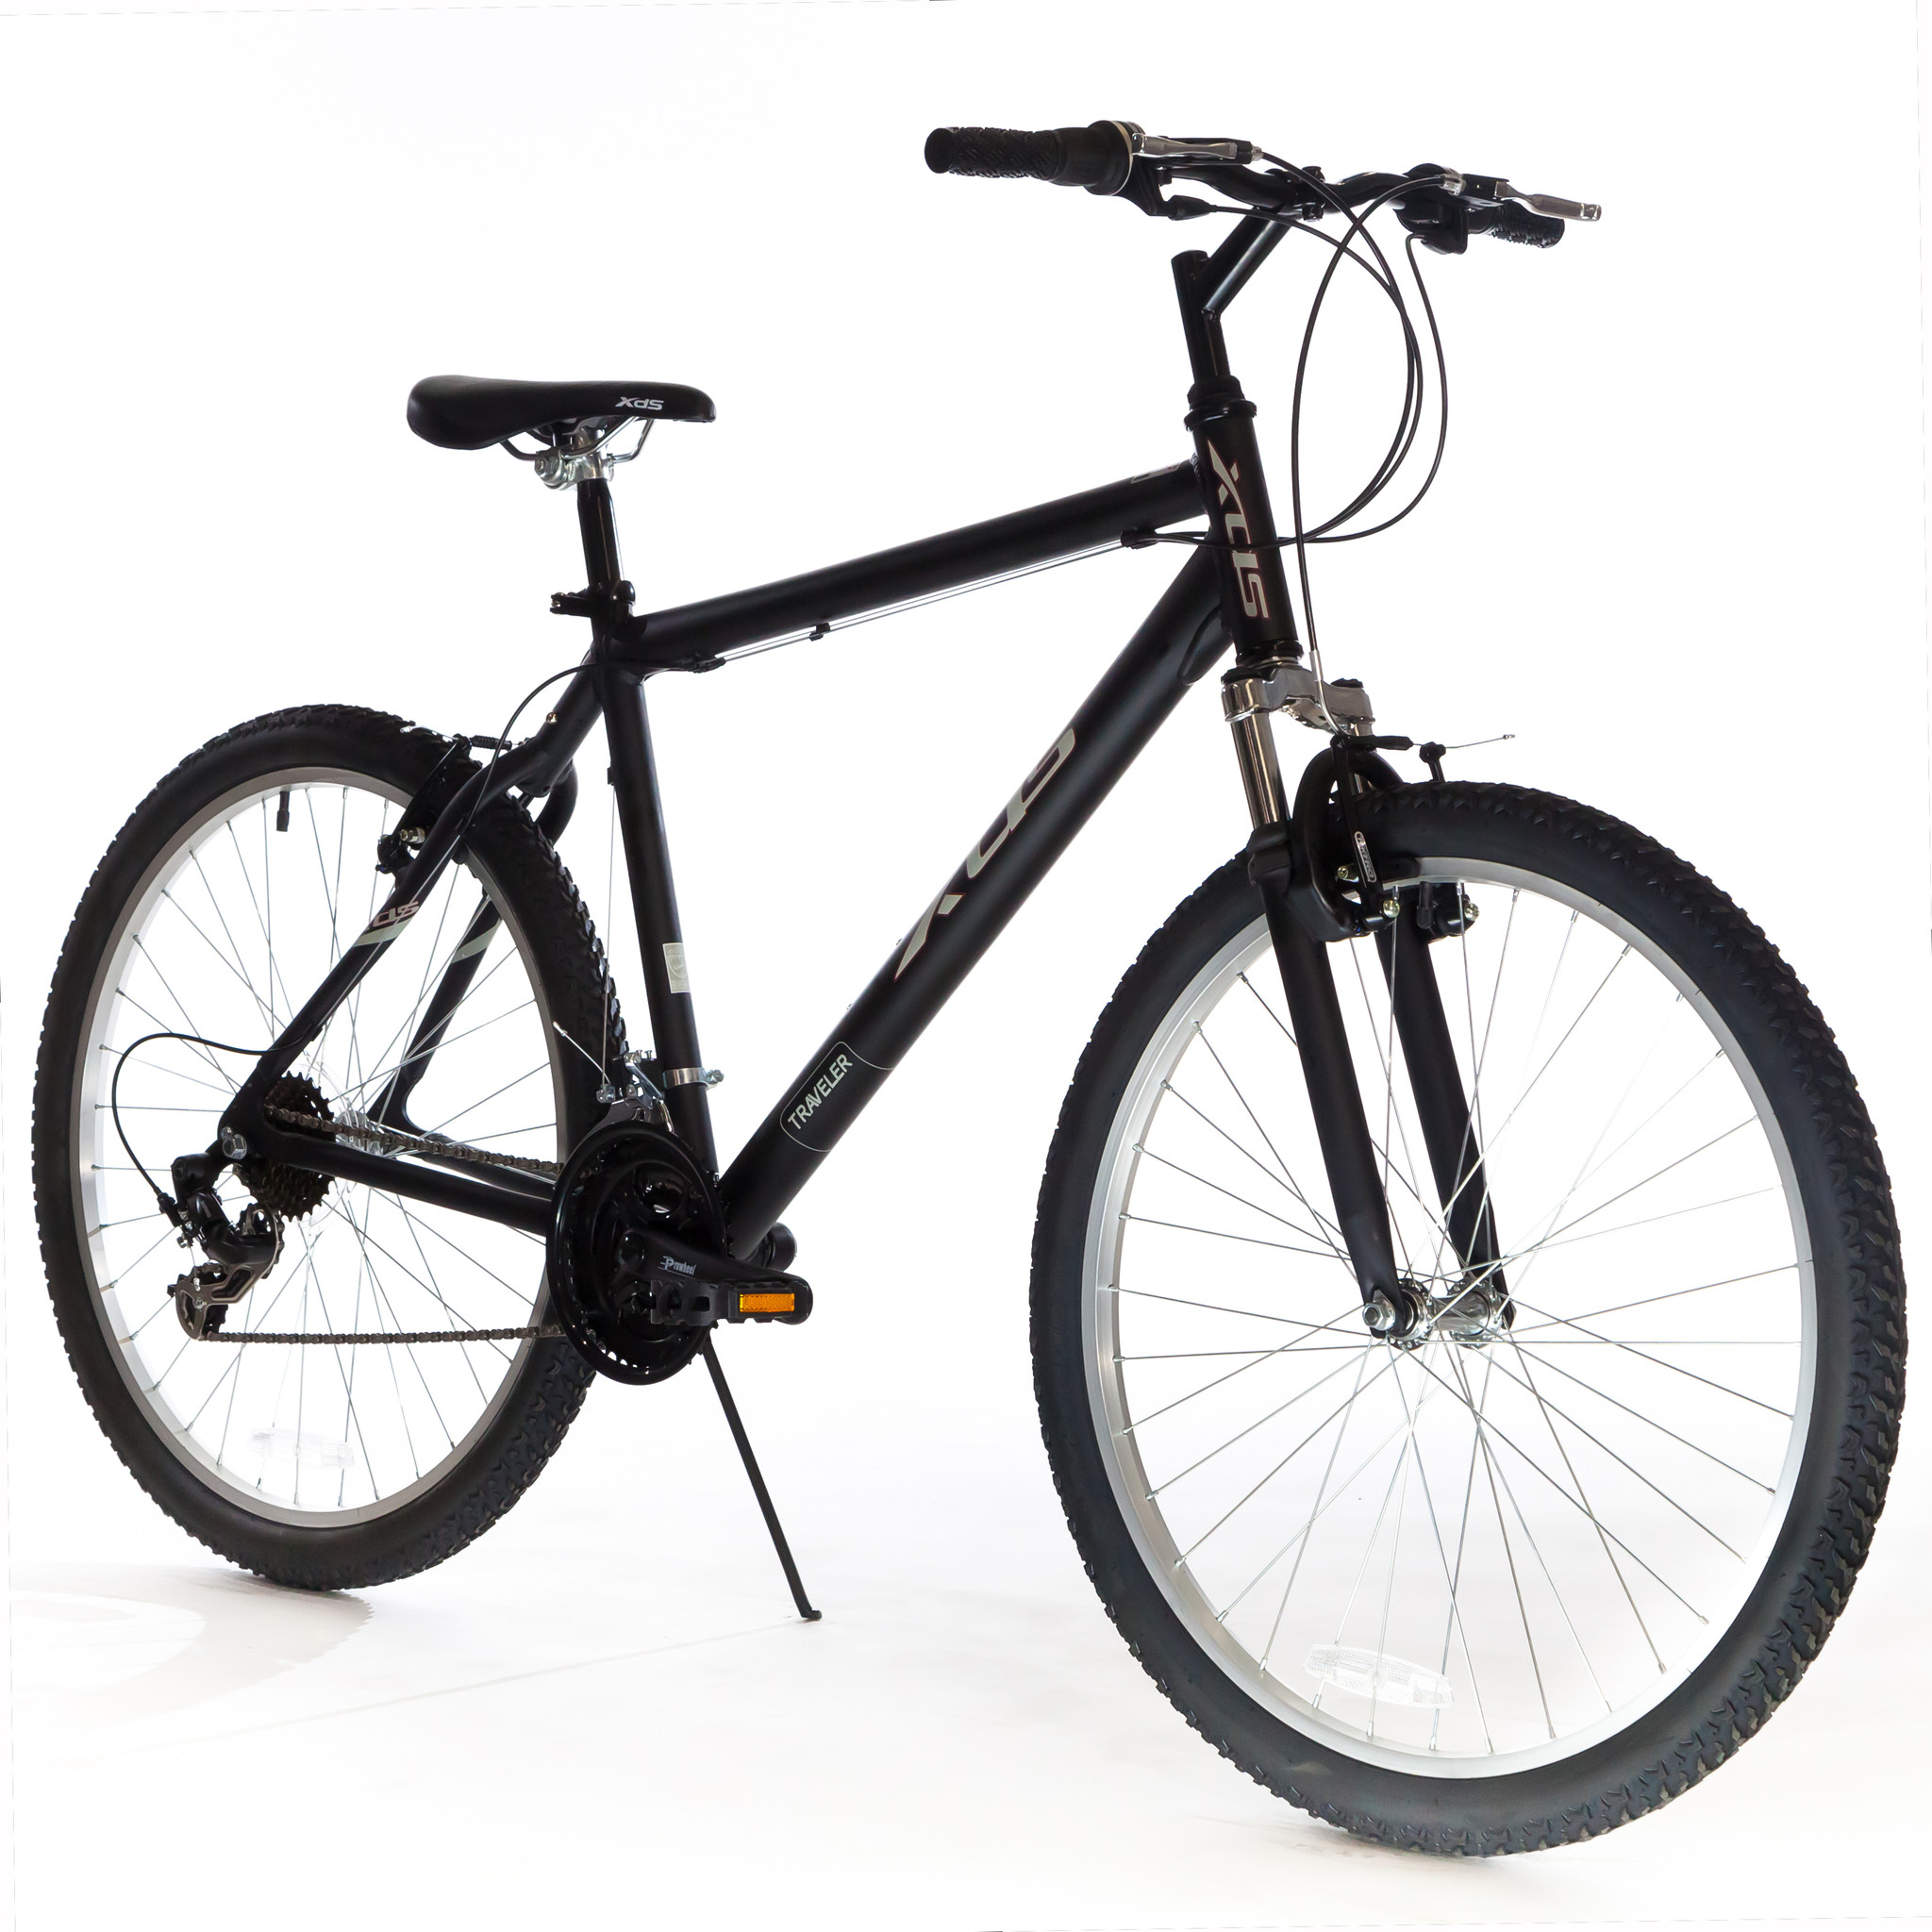 XDS Men's Traveler 21 Speed Suspension Mountain Bike